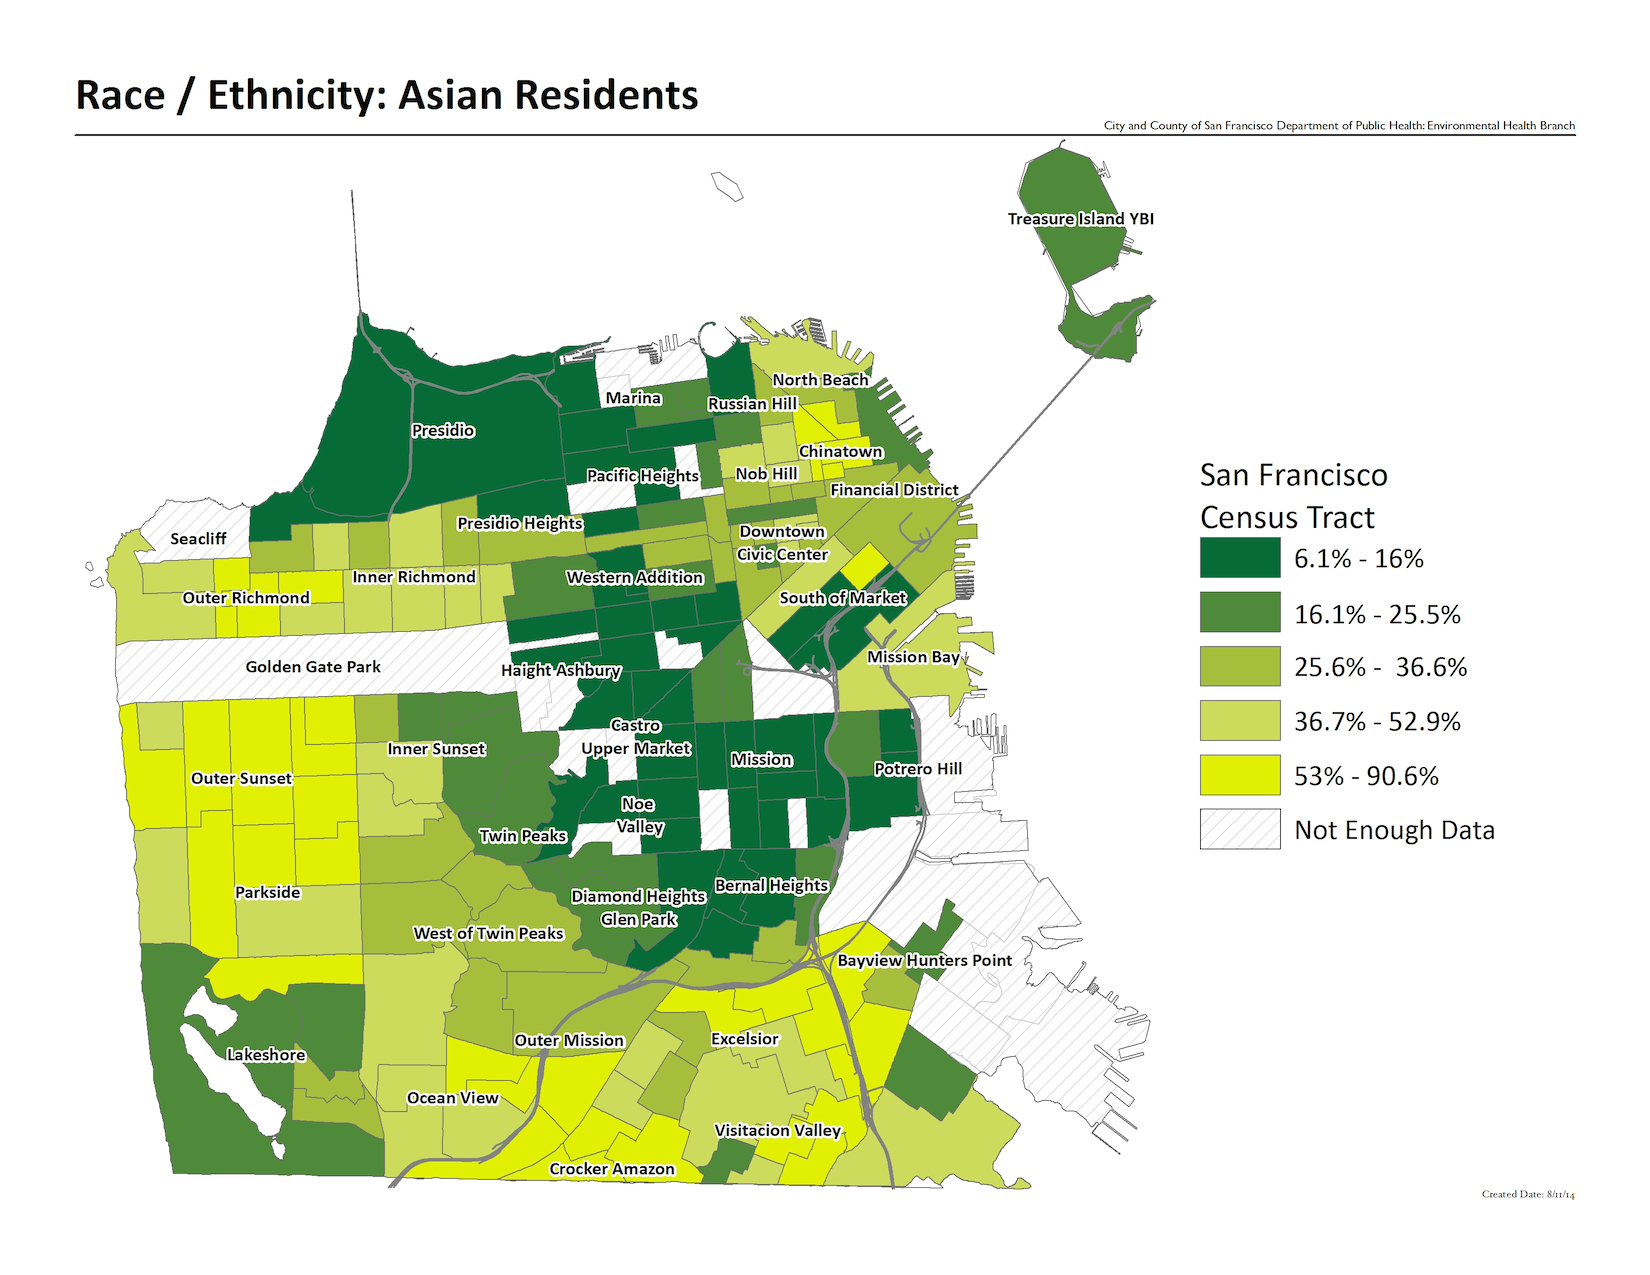 Map of Asian Residents by Census Tract. Outer Sunset and Crocker Amazon have the highest percentages with 53% - 90%.